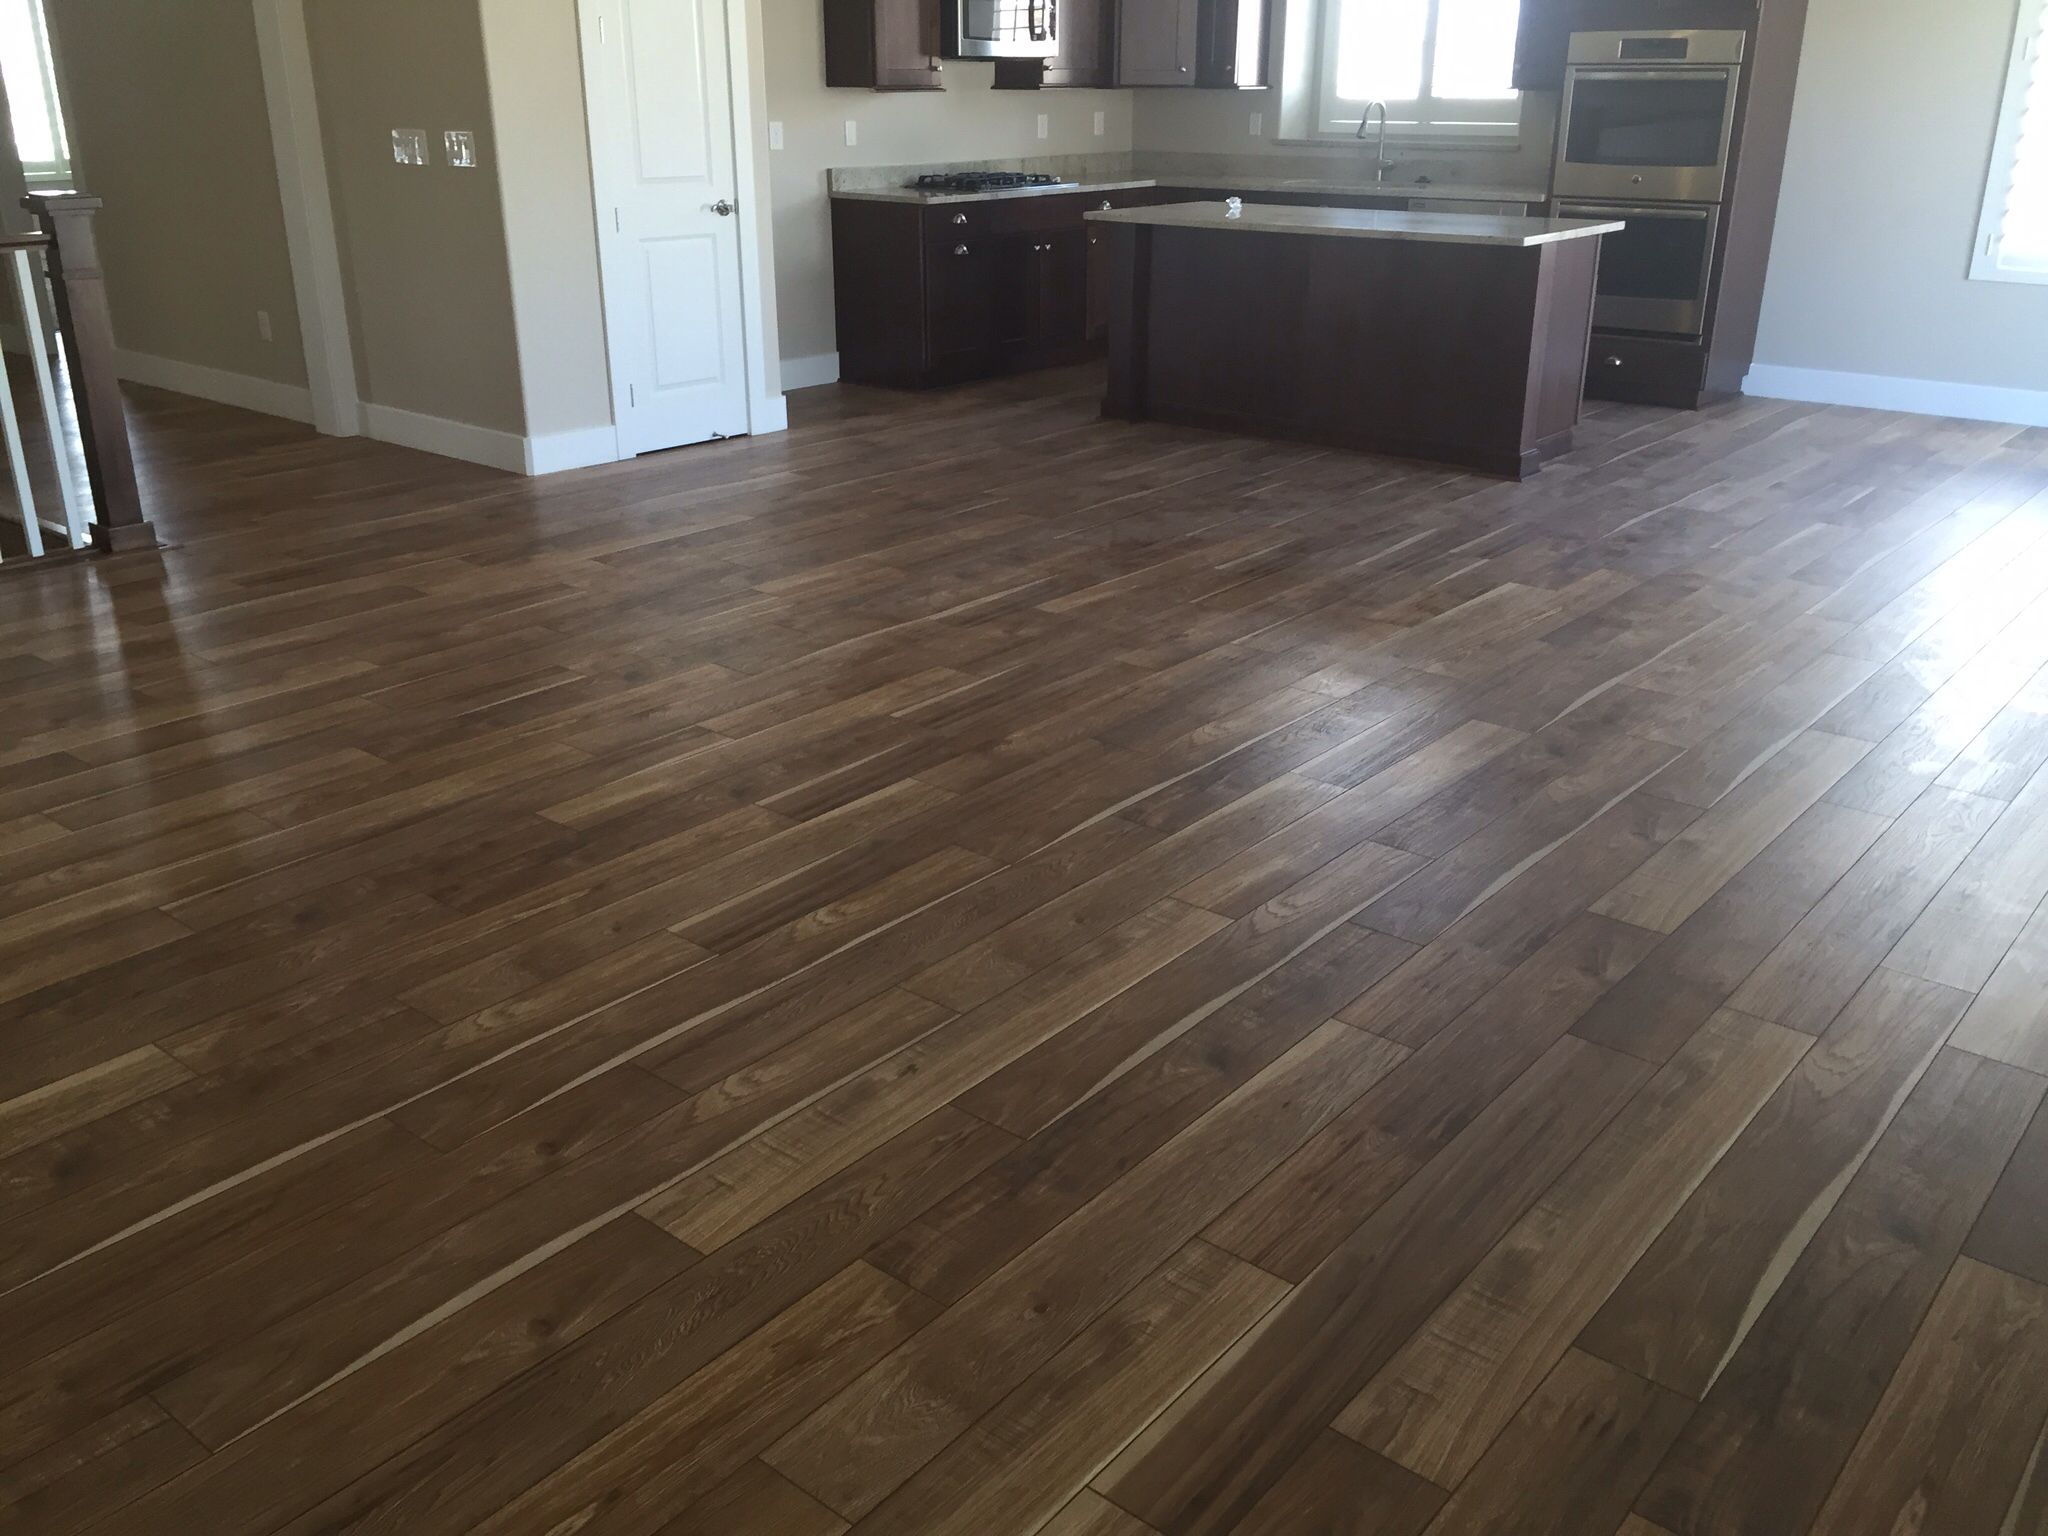 Mannington 39 s restoration collection this is sawmill for Mannington laminate flooring